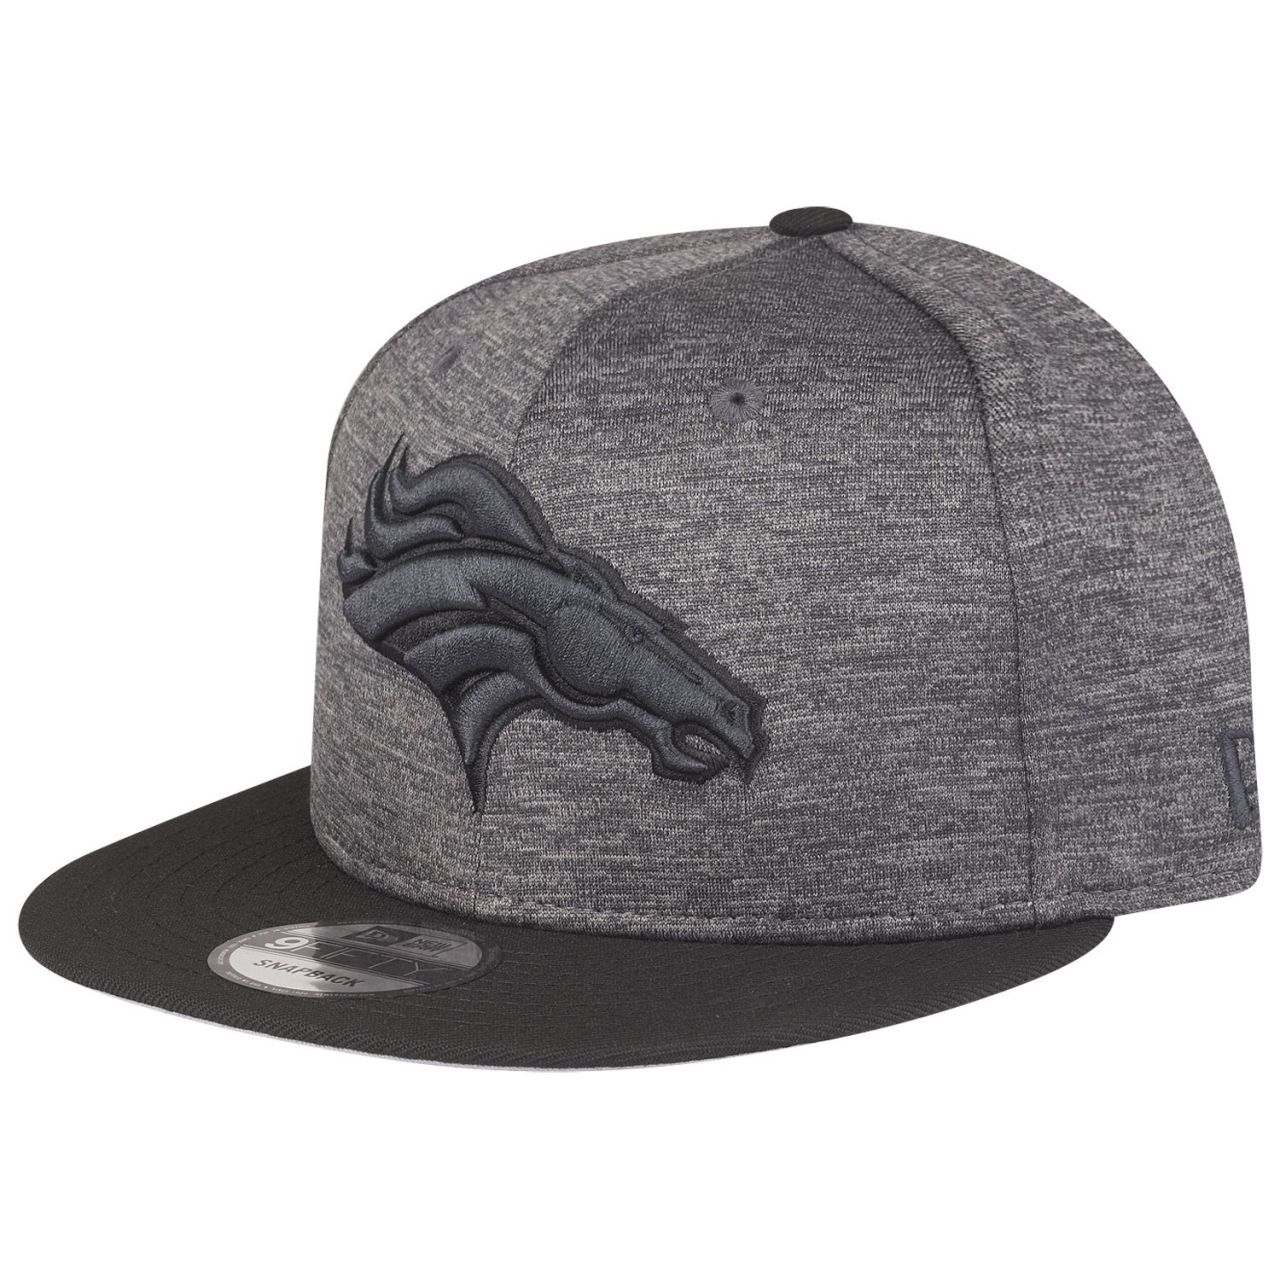 amfoo - New Era 9Fifty Snapback Cap - SHADOW TECH Denver Broncos